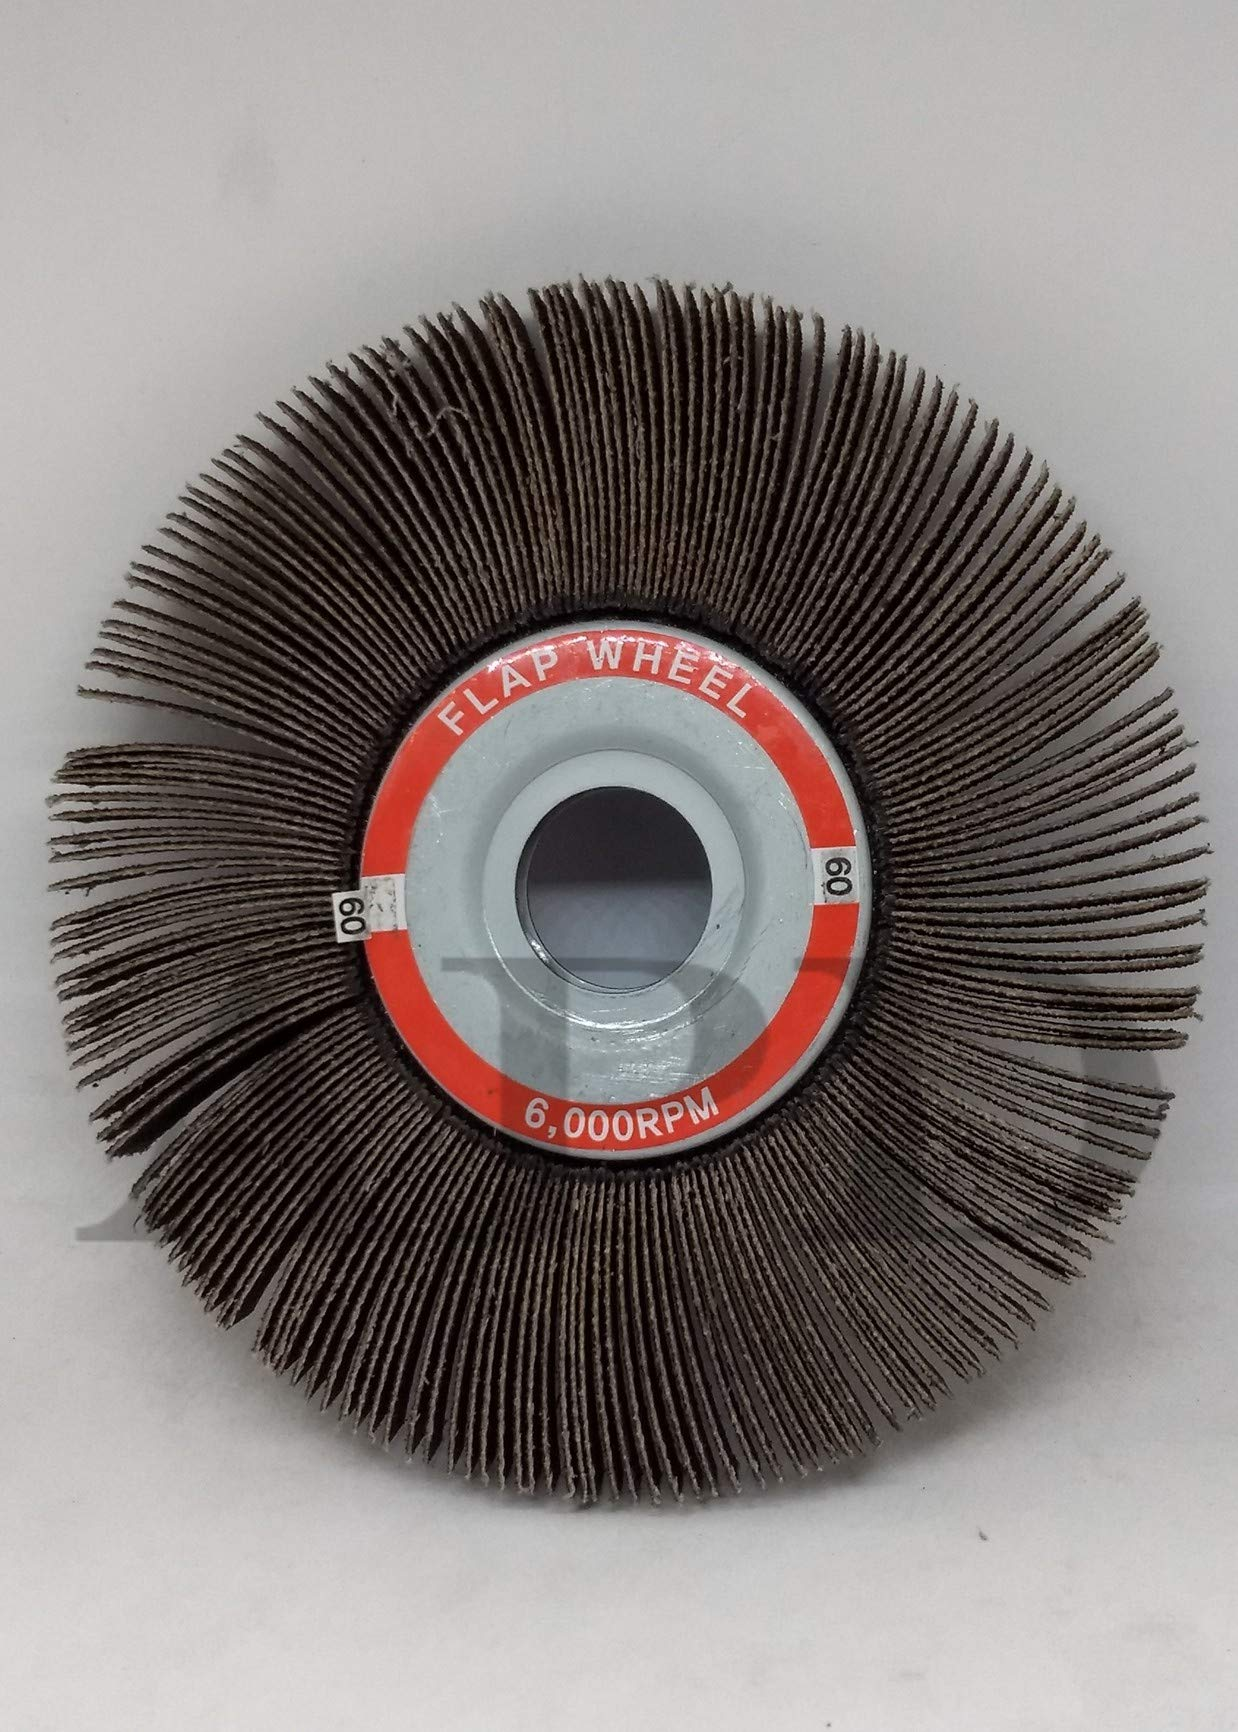 10-Pk Kelco Flap Wheel A/O 6 Inch X 1/2 Inch X 1 Inch 60 Grit by APD incorporated (Image #1)